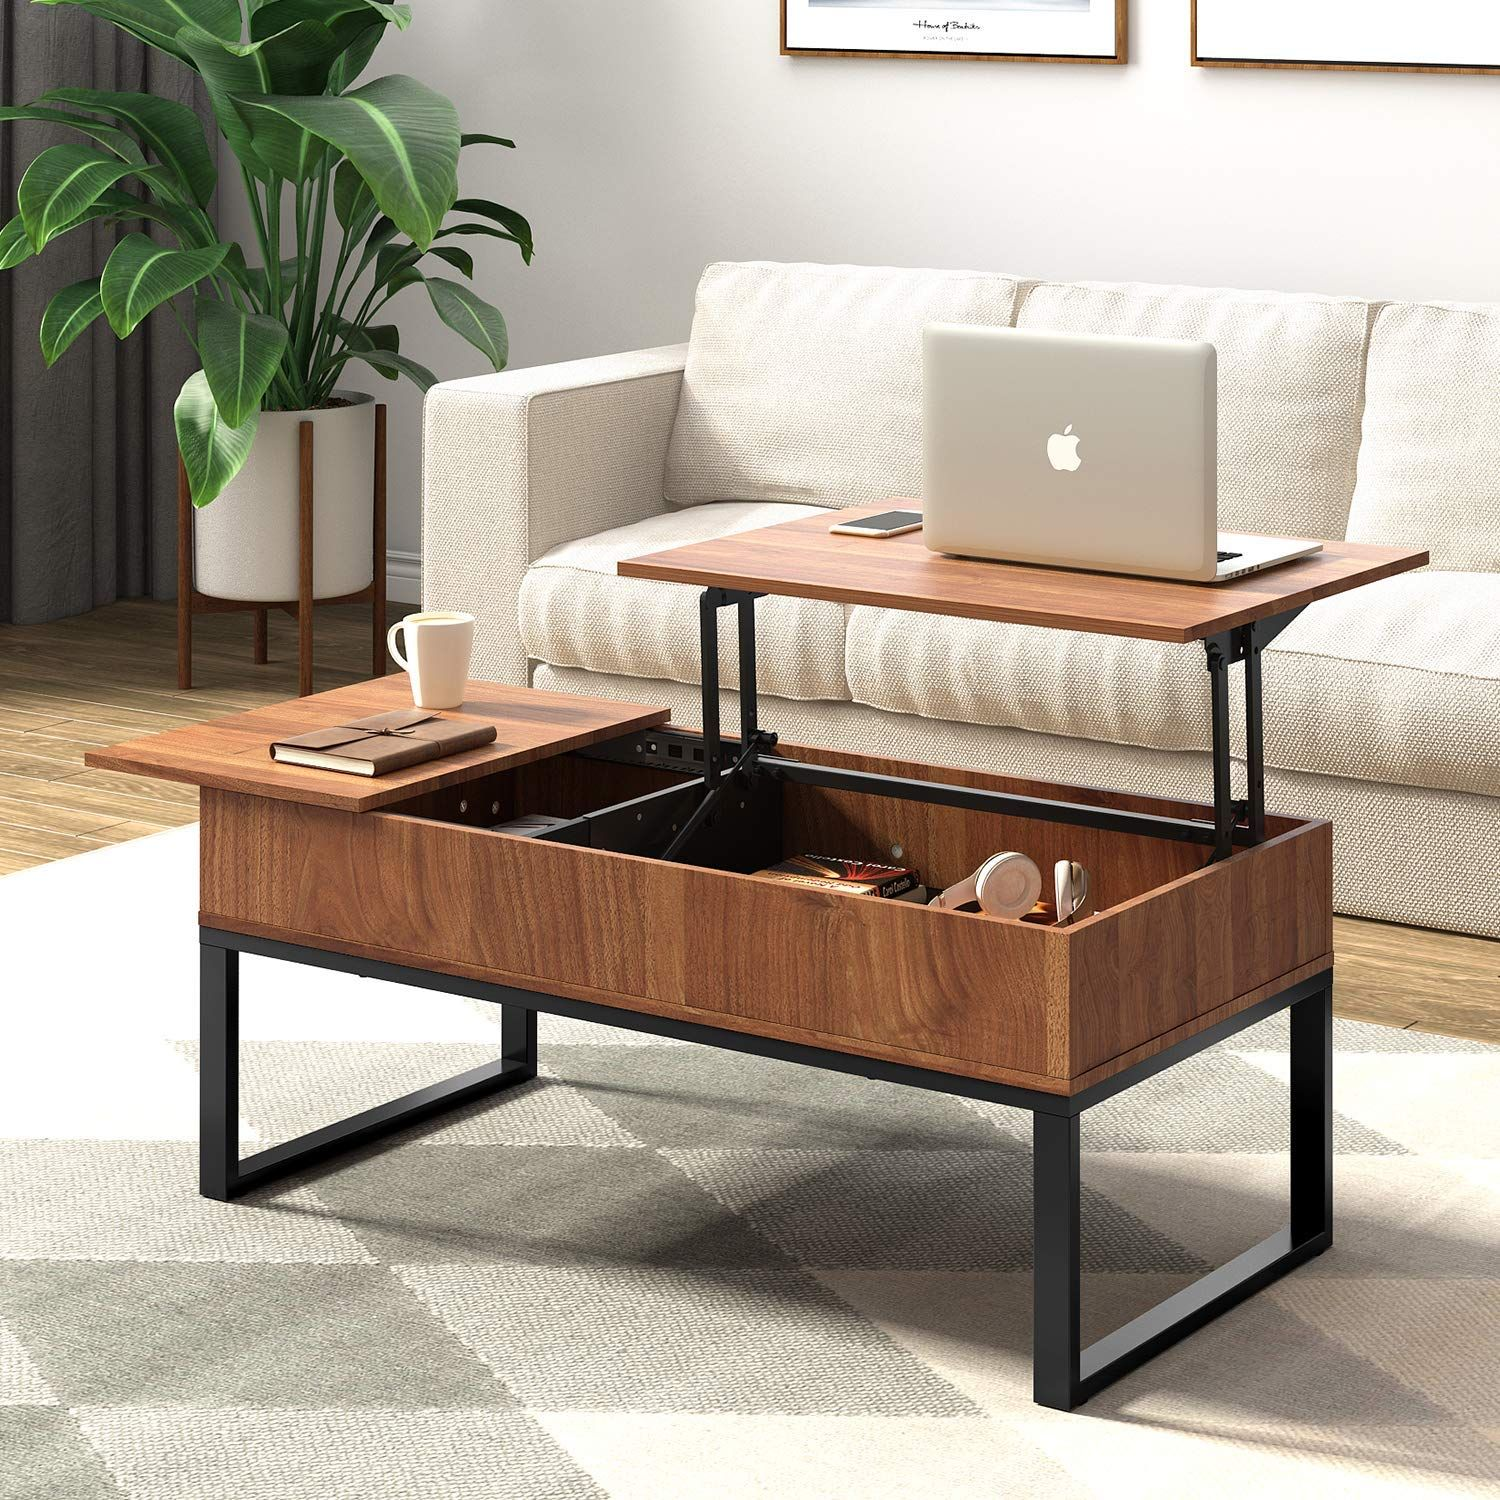 Coffee Table With Adjustable Lift Top Table Coffee Table Wood Lift Top Coffee Table Coffee Table With Hidden Storage [ 1500 x 1500 Pixel ]